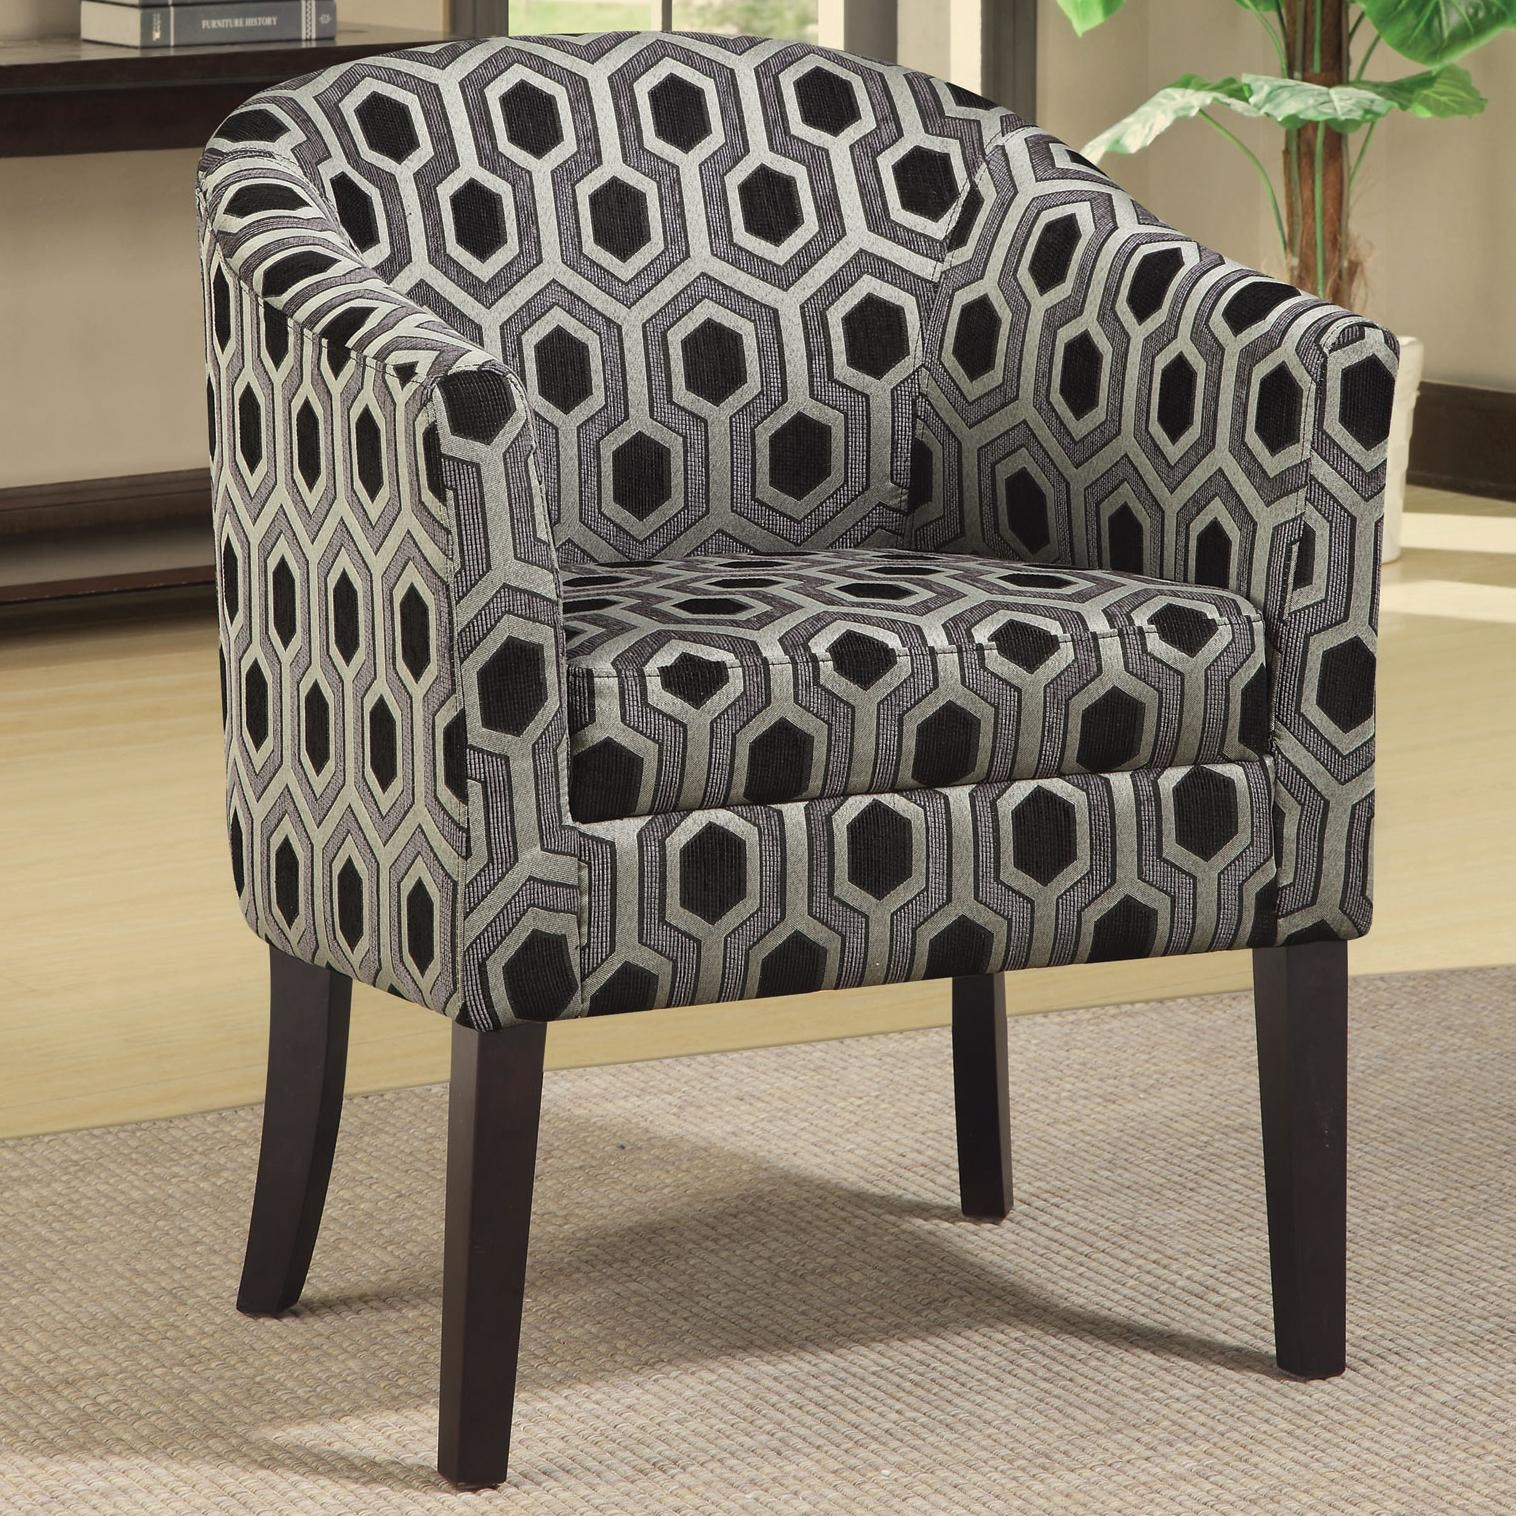 Beau Coaster Charlotte Hexagon Patterned Accent Chair With Wood Legs   Coaster  Fine Furniture